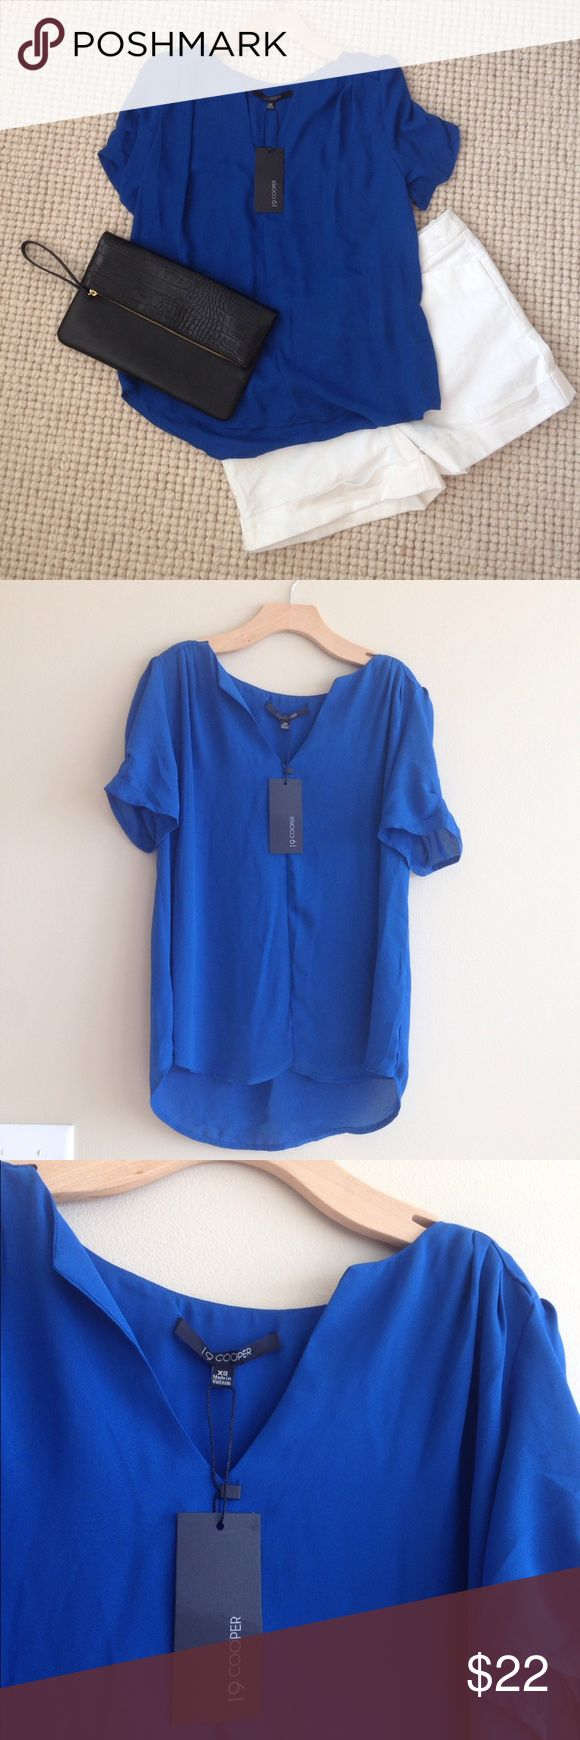 NWT! Stitch Fix 19Cooper Cobalt Blue Flowy Top Xs NWT! Stitch Fix 19Cooper Cobalt Blue Flowy Top. Xs. Perfect Summer Top for every occasion. Cute back pleat and ruching on shoulders. 19Cooper Tops Tees - Short Sleeve